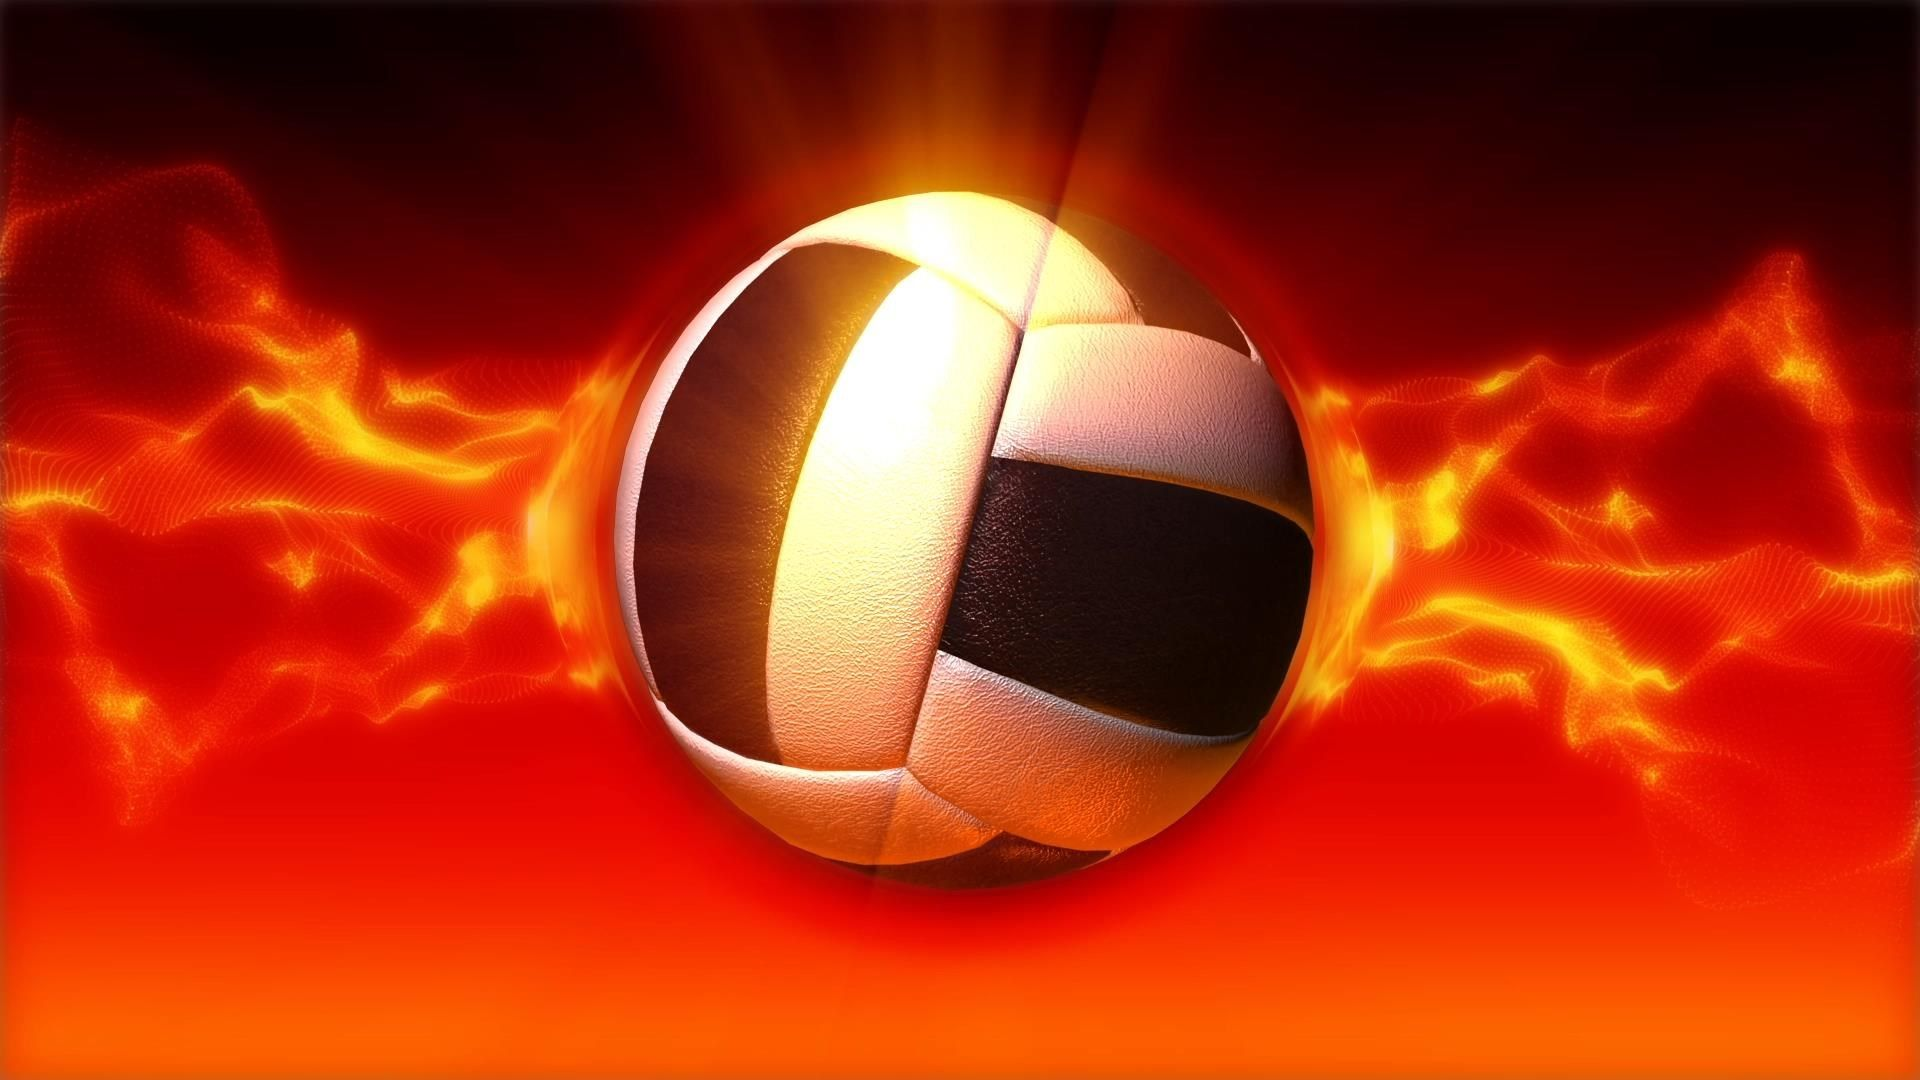 Download Volleyball Wallpapers Volleyball Wallpaper Volleyball Wallpaper